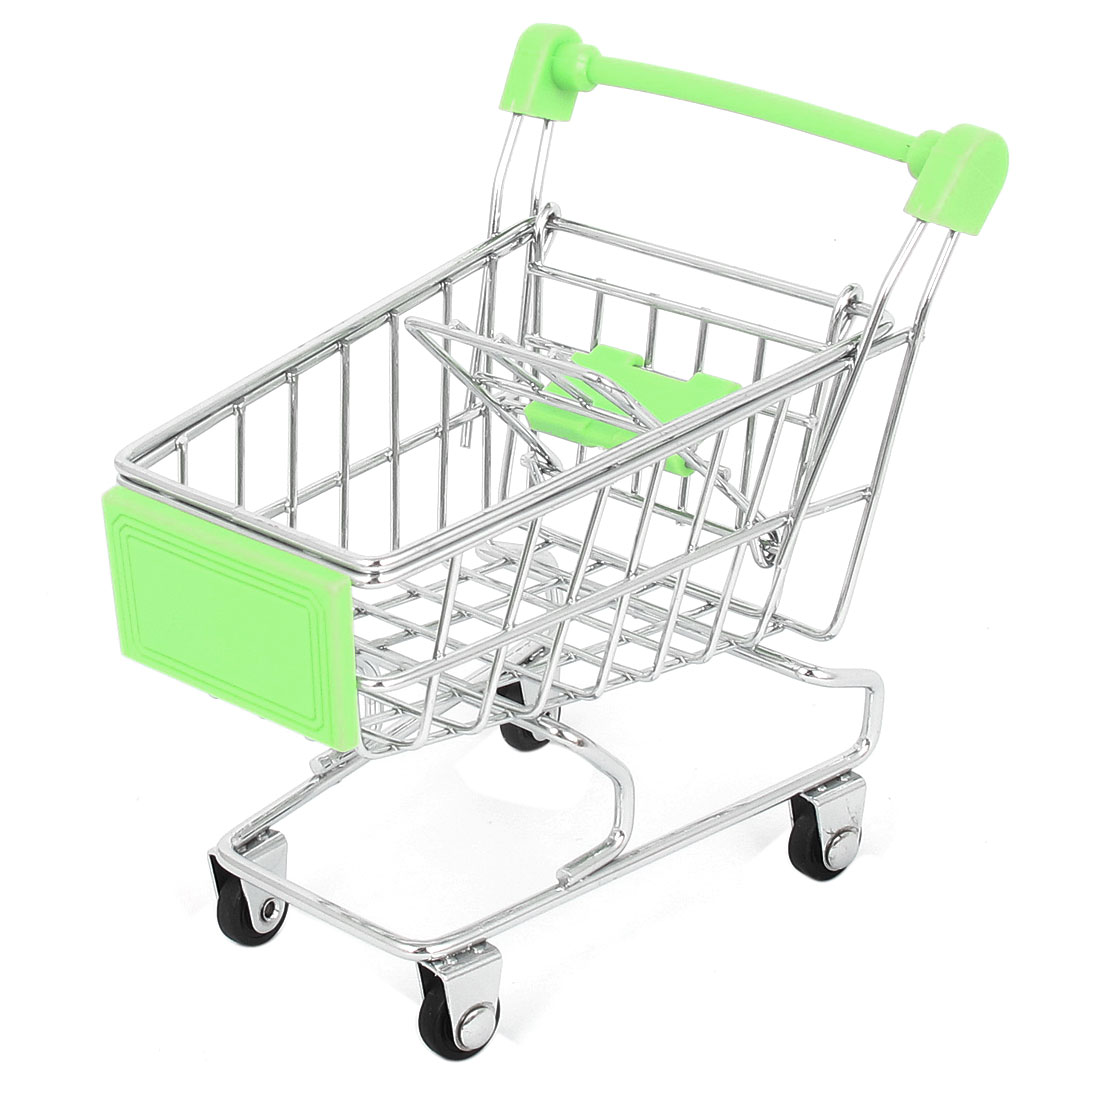 Supermarket Mini Shopping Cart Mode Model Storage Container Green